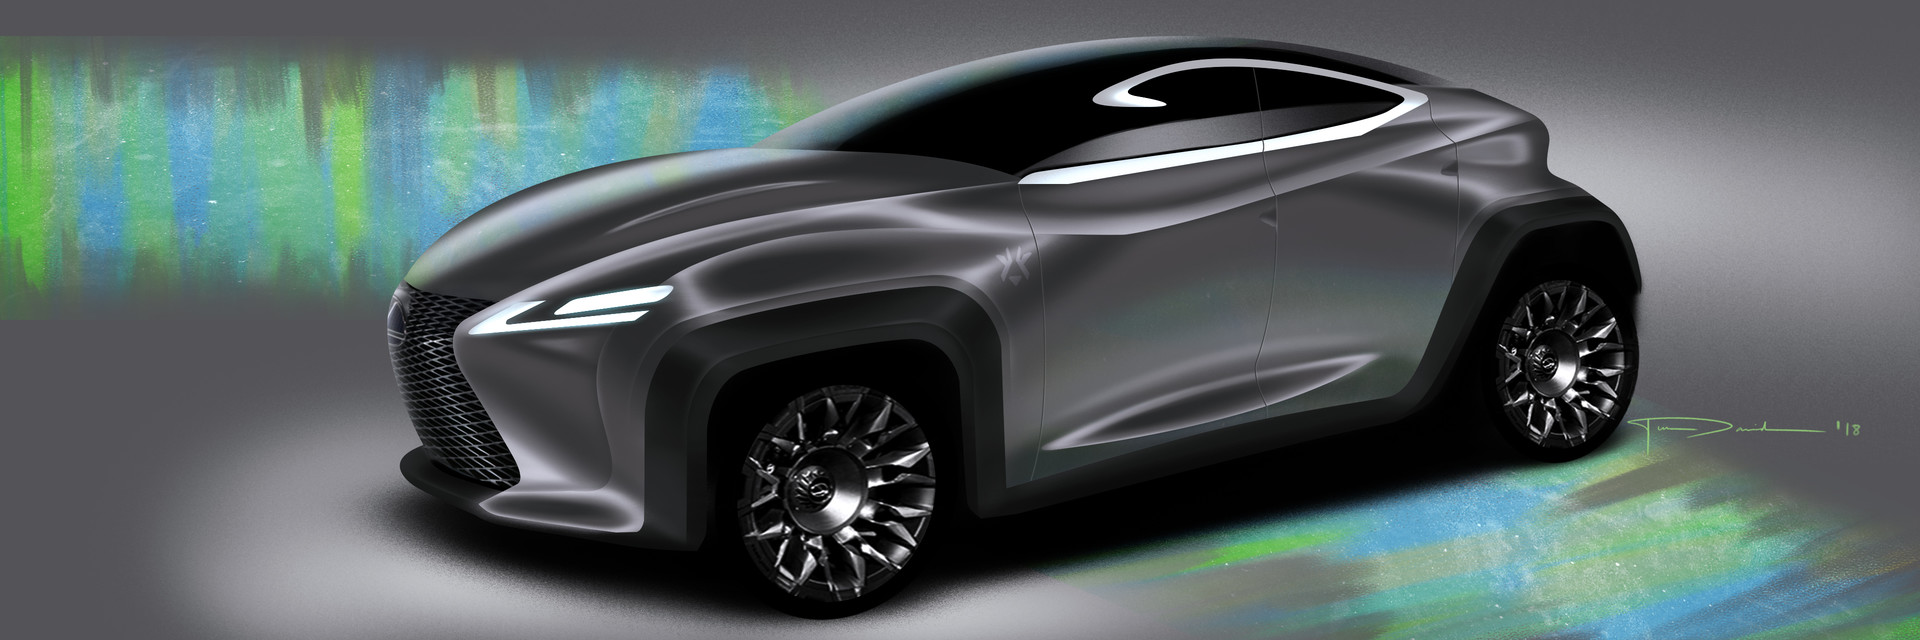 Ilel David Lexus Suv Sketch Video Process Car Lsk